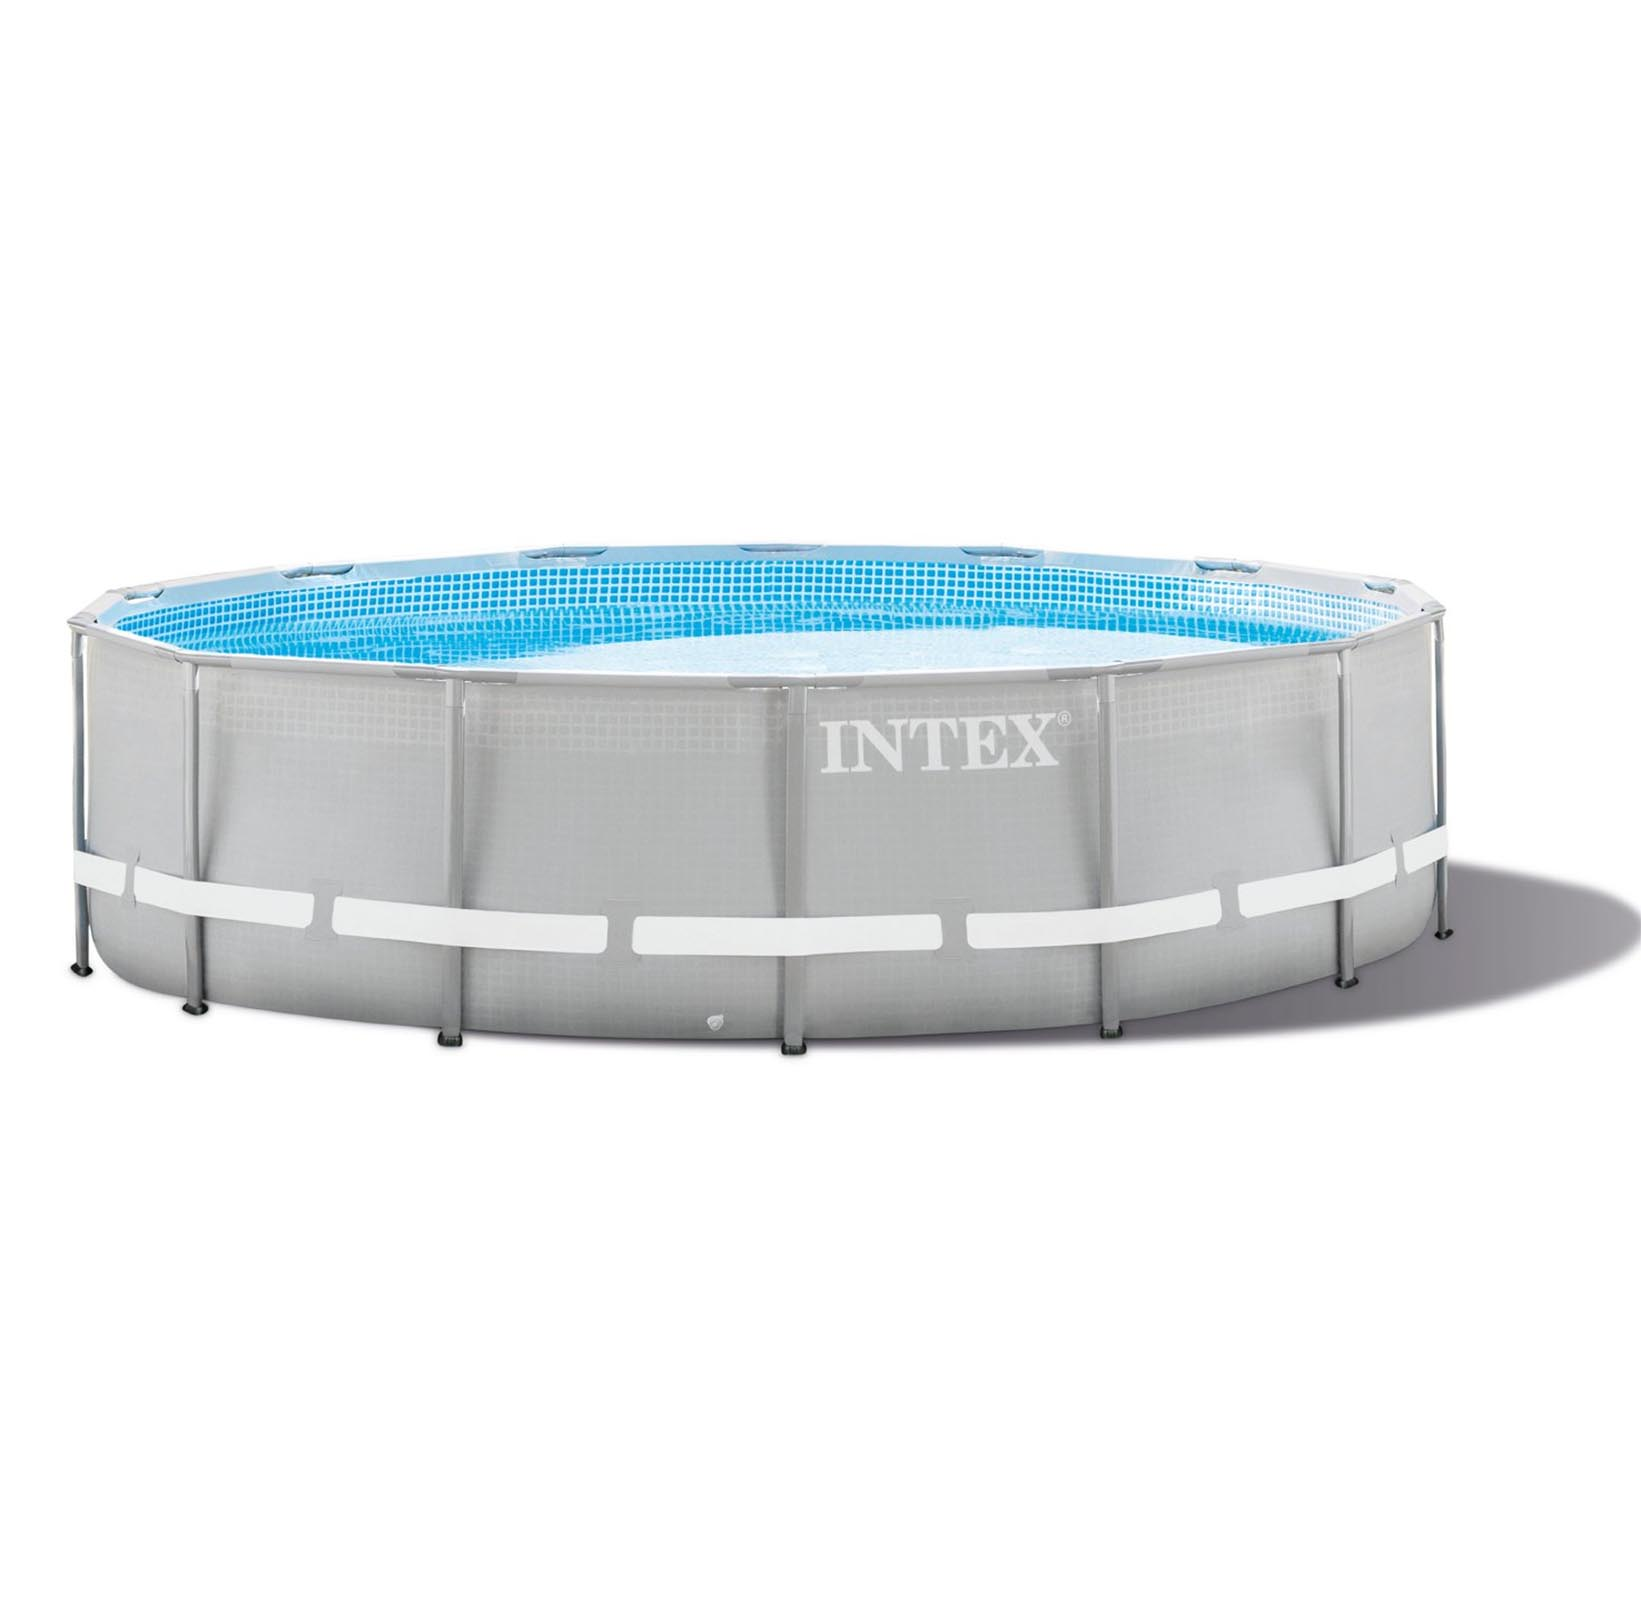 Intex 15 Foot x 48 Inch Ultra Frame Above Ground Swimming Pool Set | 28343EH by